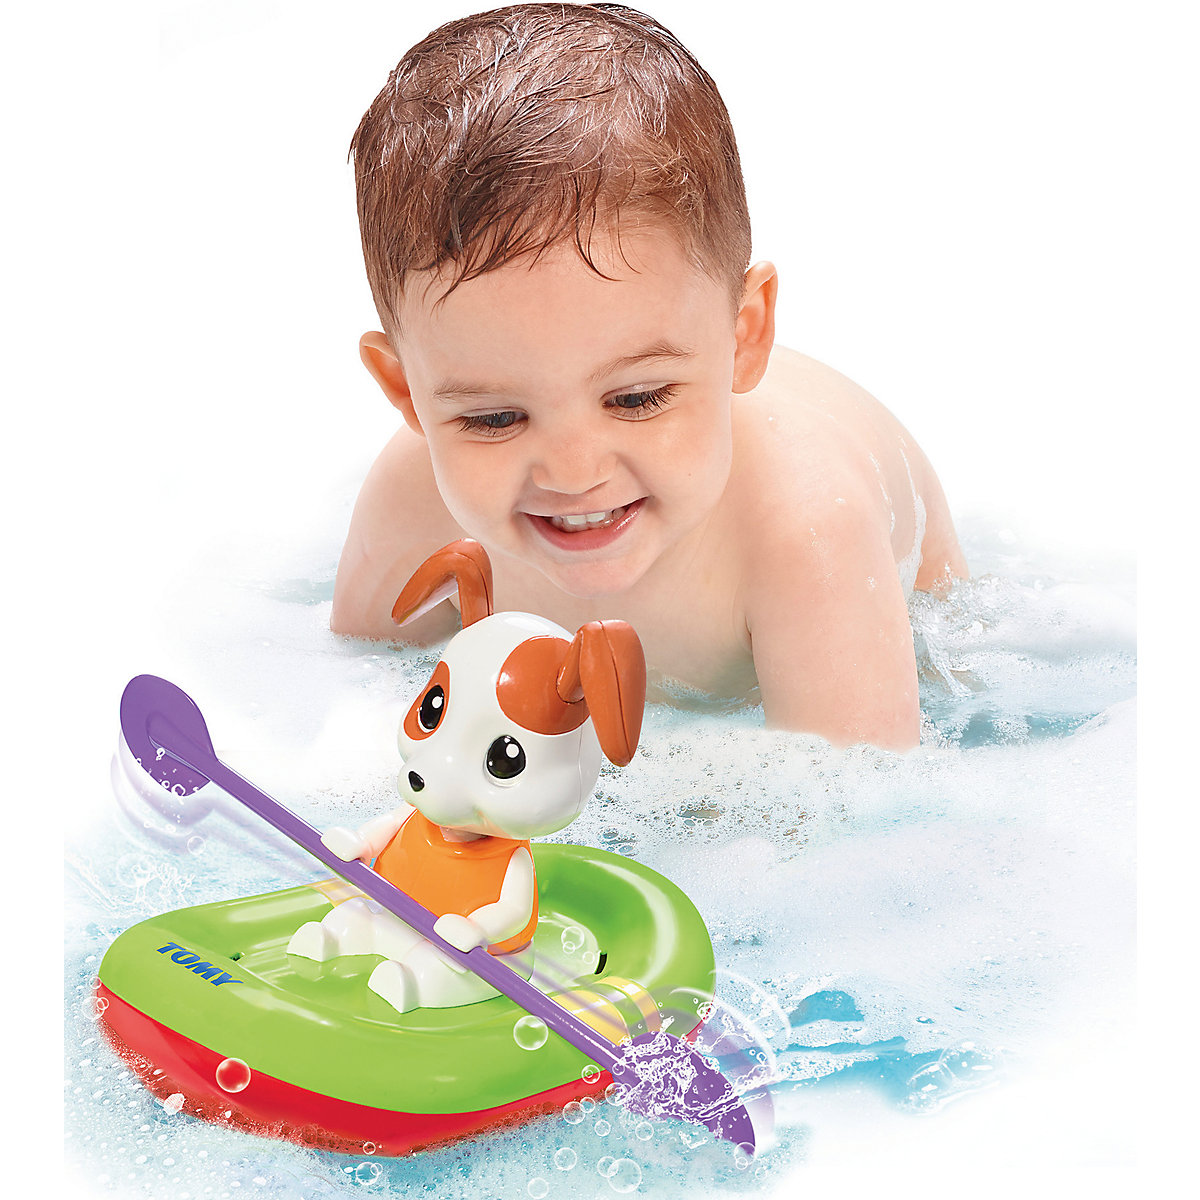 Bath Toy TOMY 4599020 Bathing Bath toys for bathroom on suckers Rubber Duck Doll Kids манеж фея квадрат экстра желтый